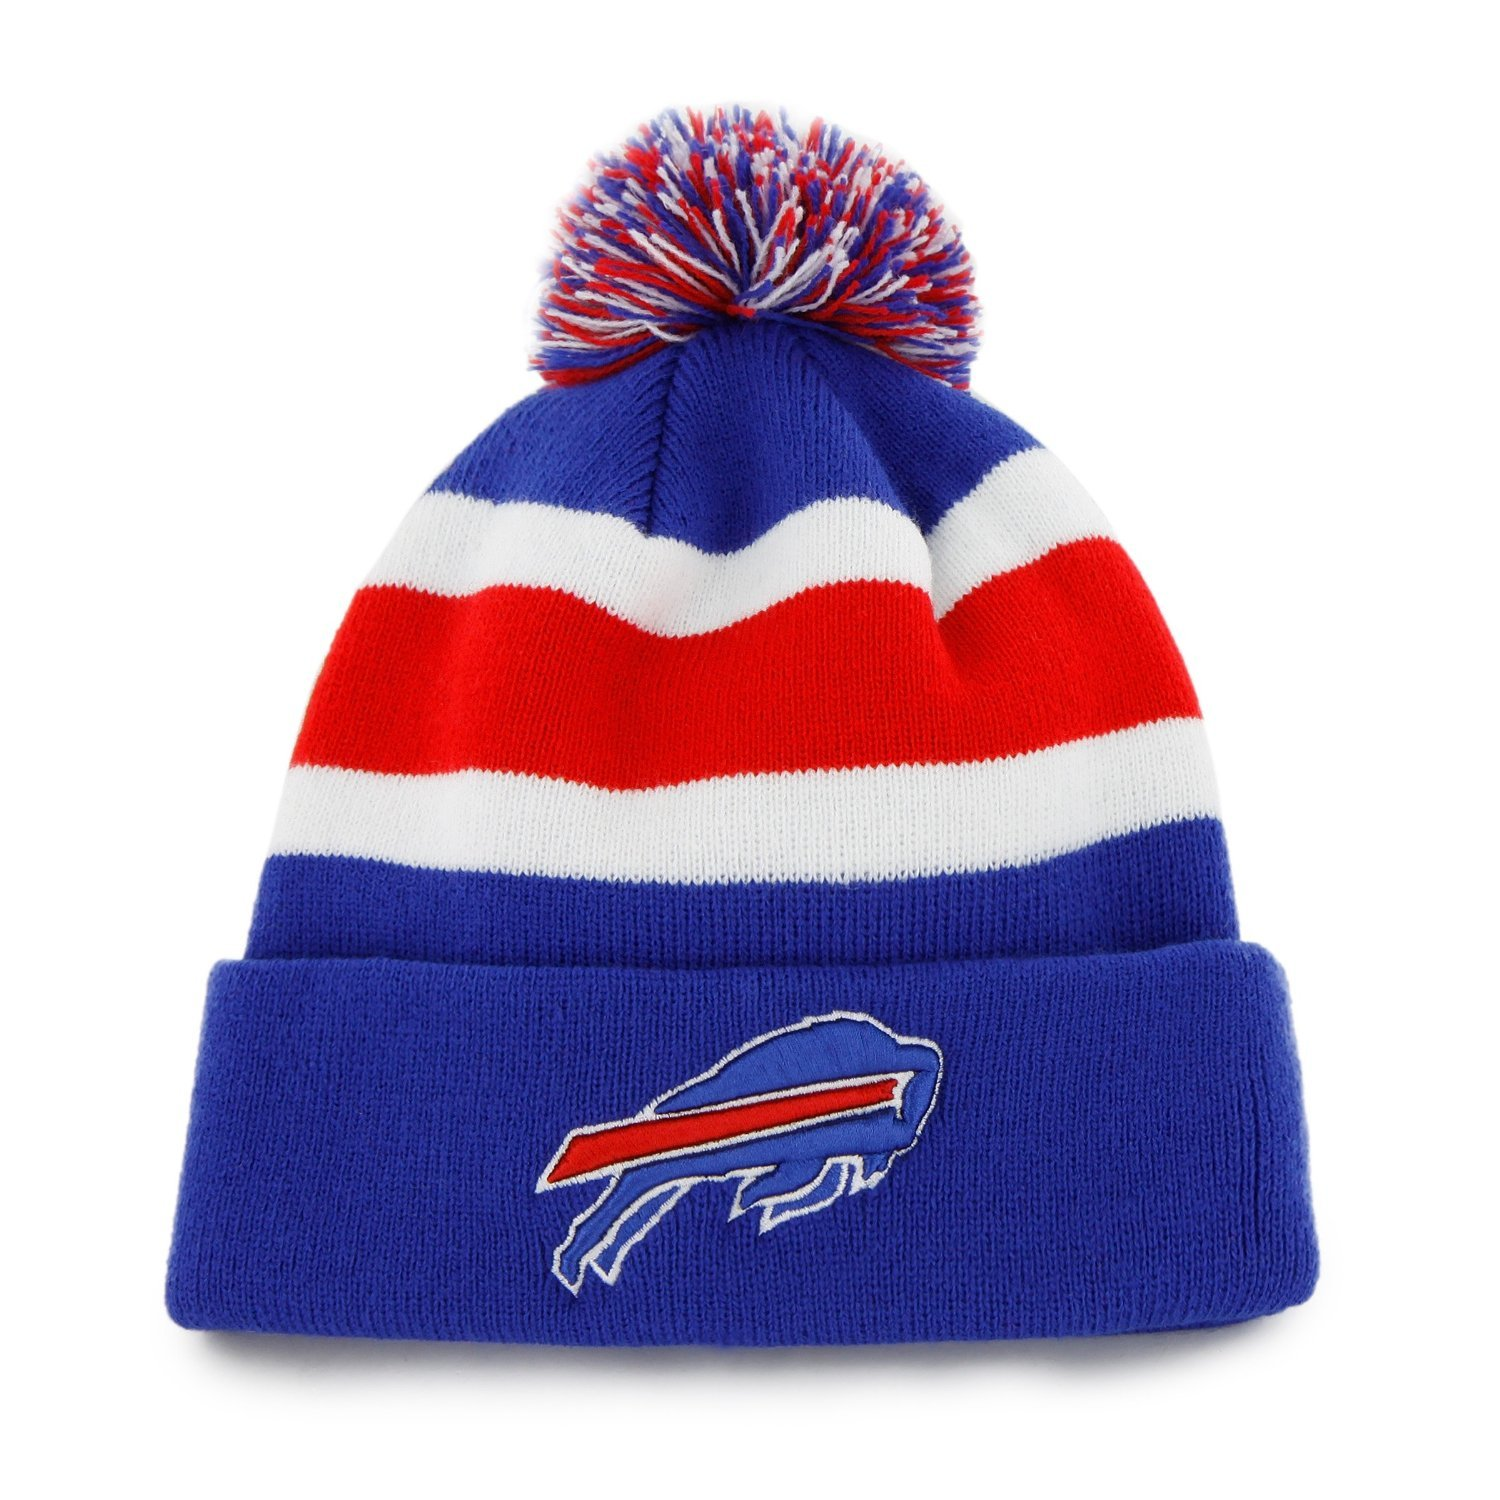 Amazon.com    47 Buffalo Bills Blue Cuff Breakaway Beanie Hat with Pom -  NFL Cuffed Winter Knit Toque Cap   Sports   Outdoors f3f3fb93335